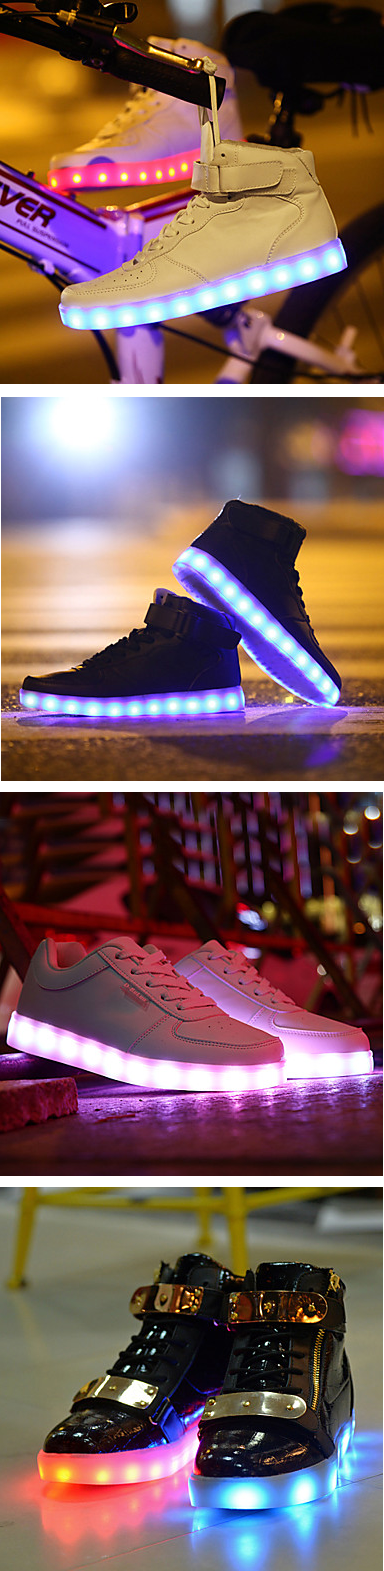 Be noticeable - wear new generation LED sneakers! Find a pair each for your family member and enjoy family walks together!  Explore all the choice we have by clicking on the picture.